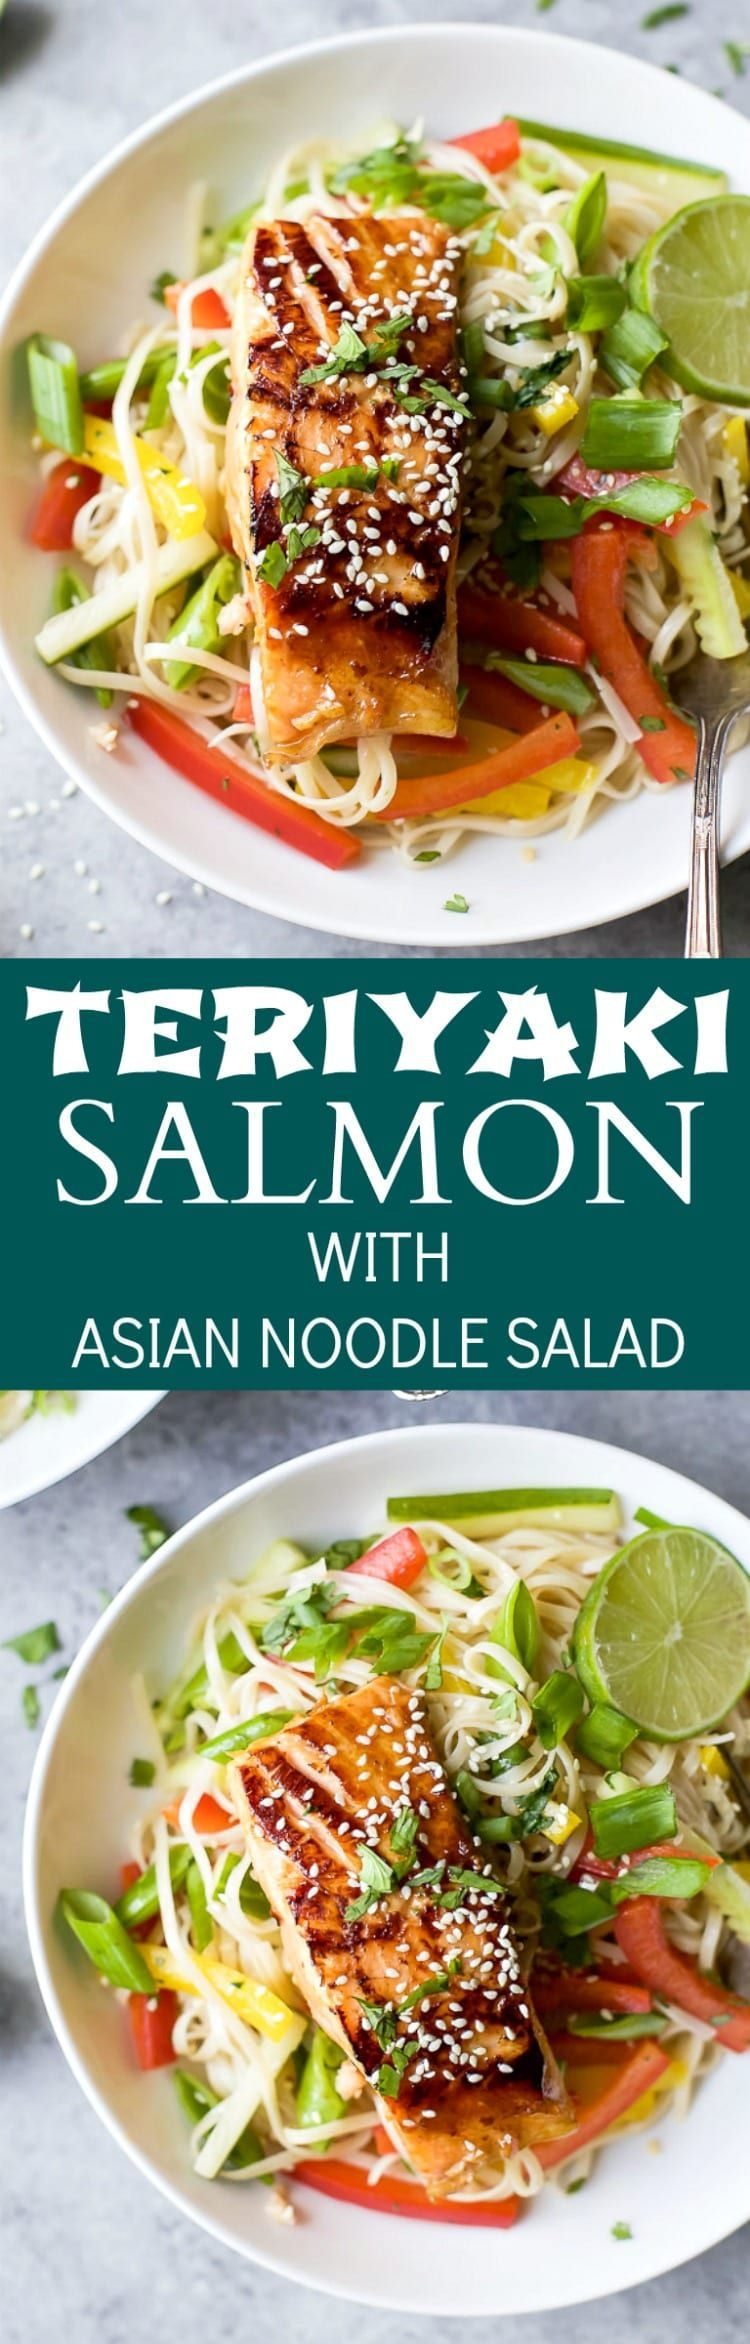 Teriyaki Salmon with Asian Noodle Salad #teriyakisalmon Teriyaki Salmon with Asian Noodle Salad #teriyakisalmon